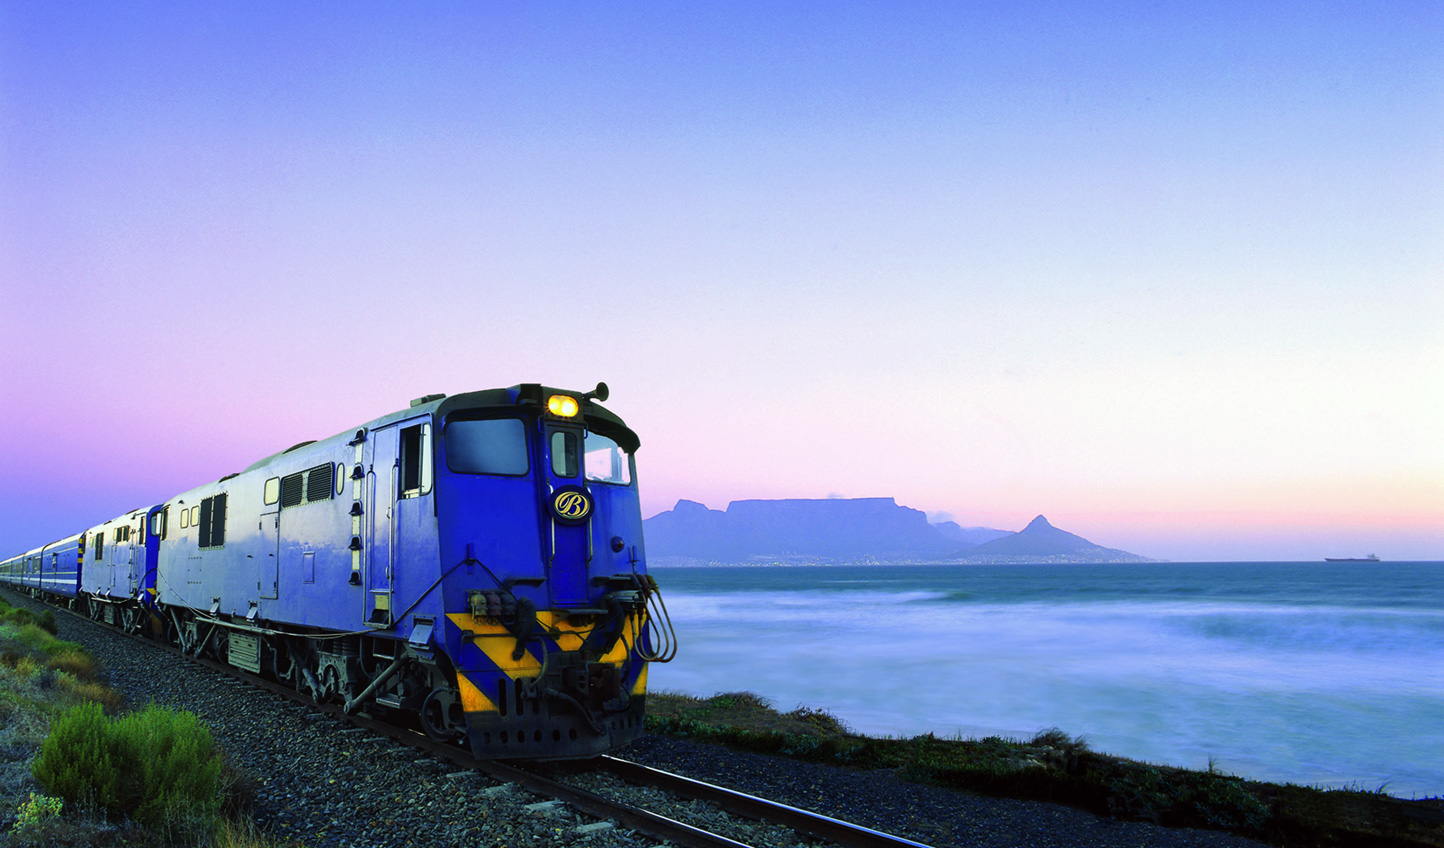 Travel from Pretoria to Cape Town on the Blue Train and see South Africa in all its glory